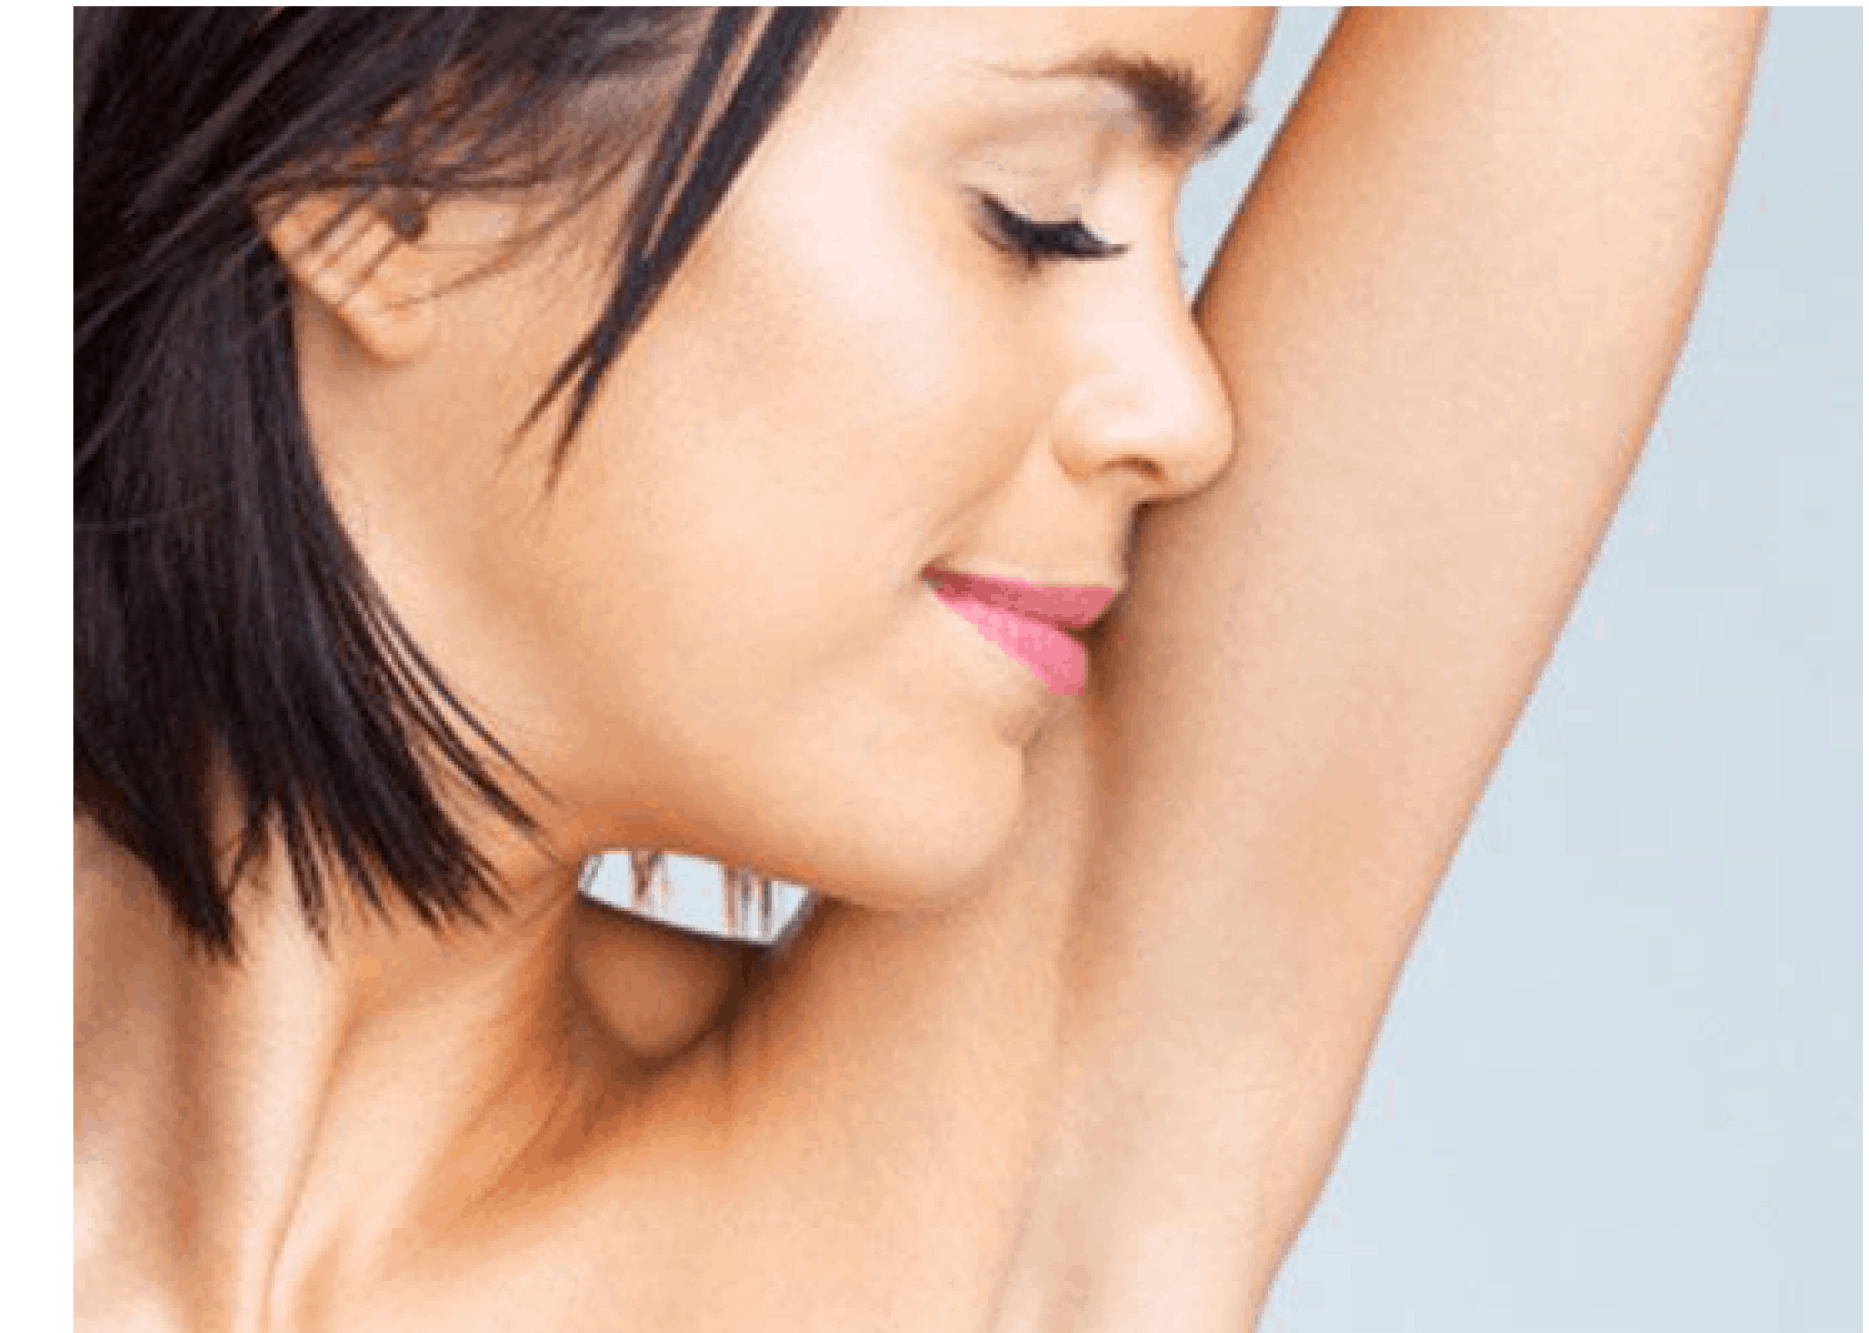 Best Permanent Hair Removal at Home - 2019 Review